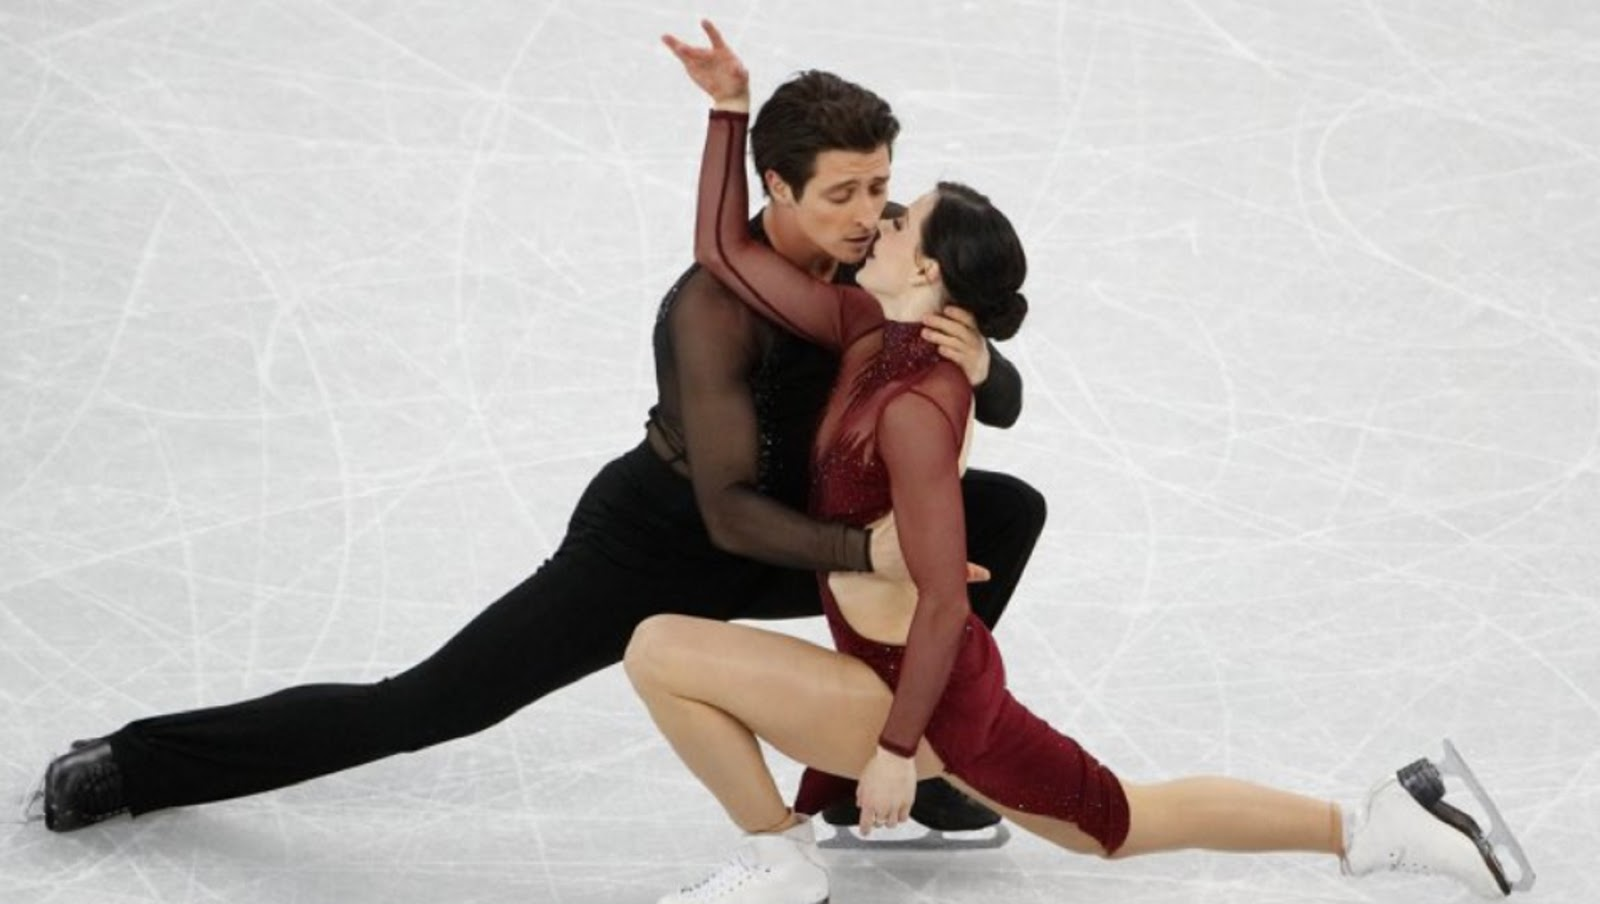 TESSA VIRTUE, SCOTT MOIR 2